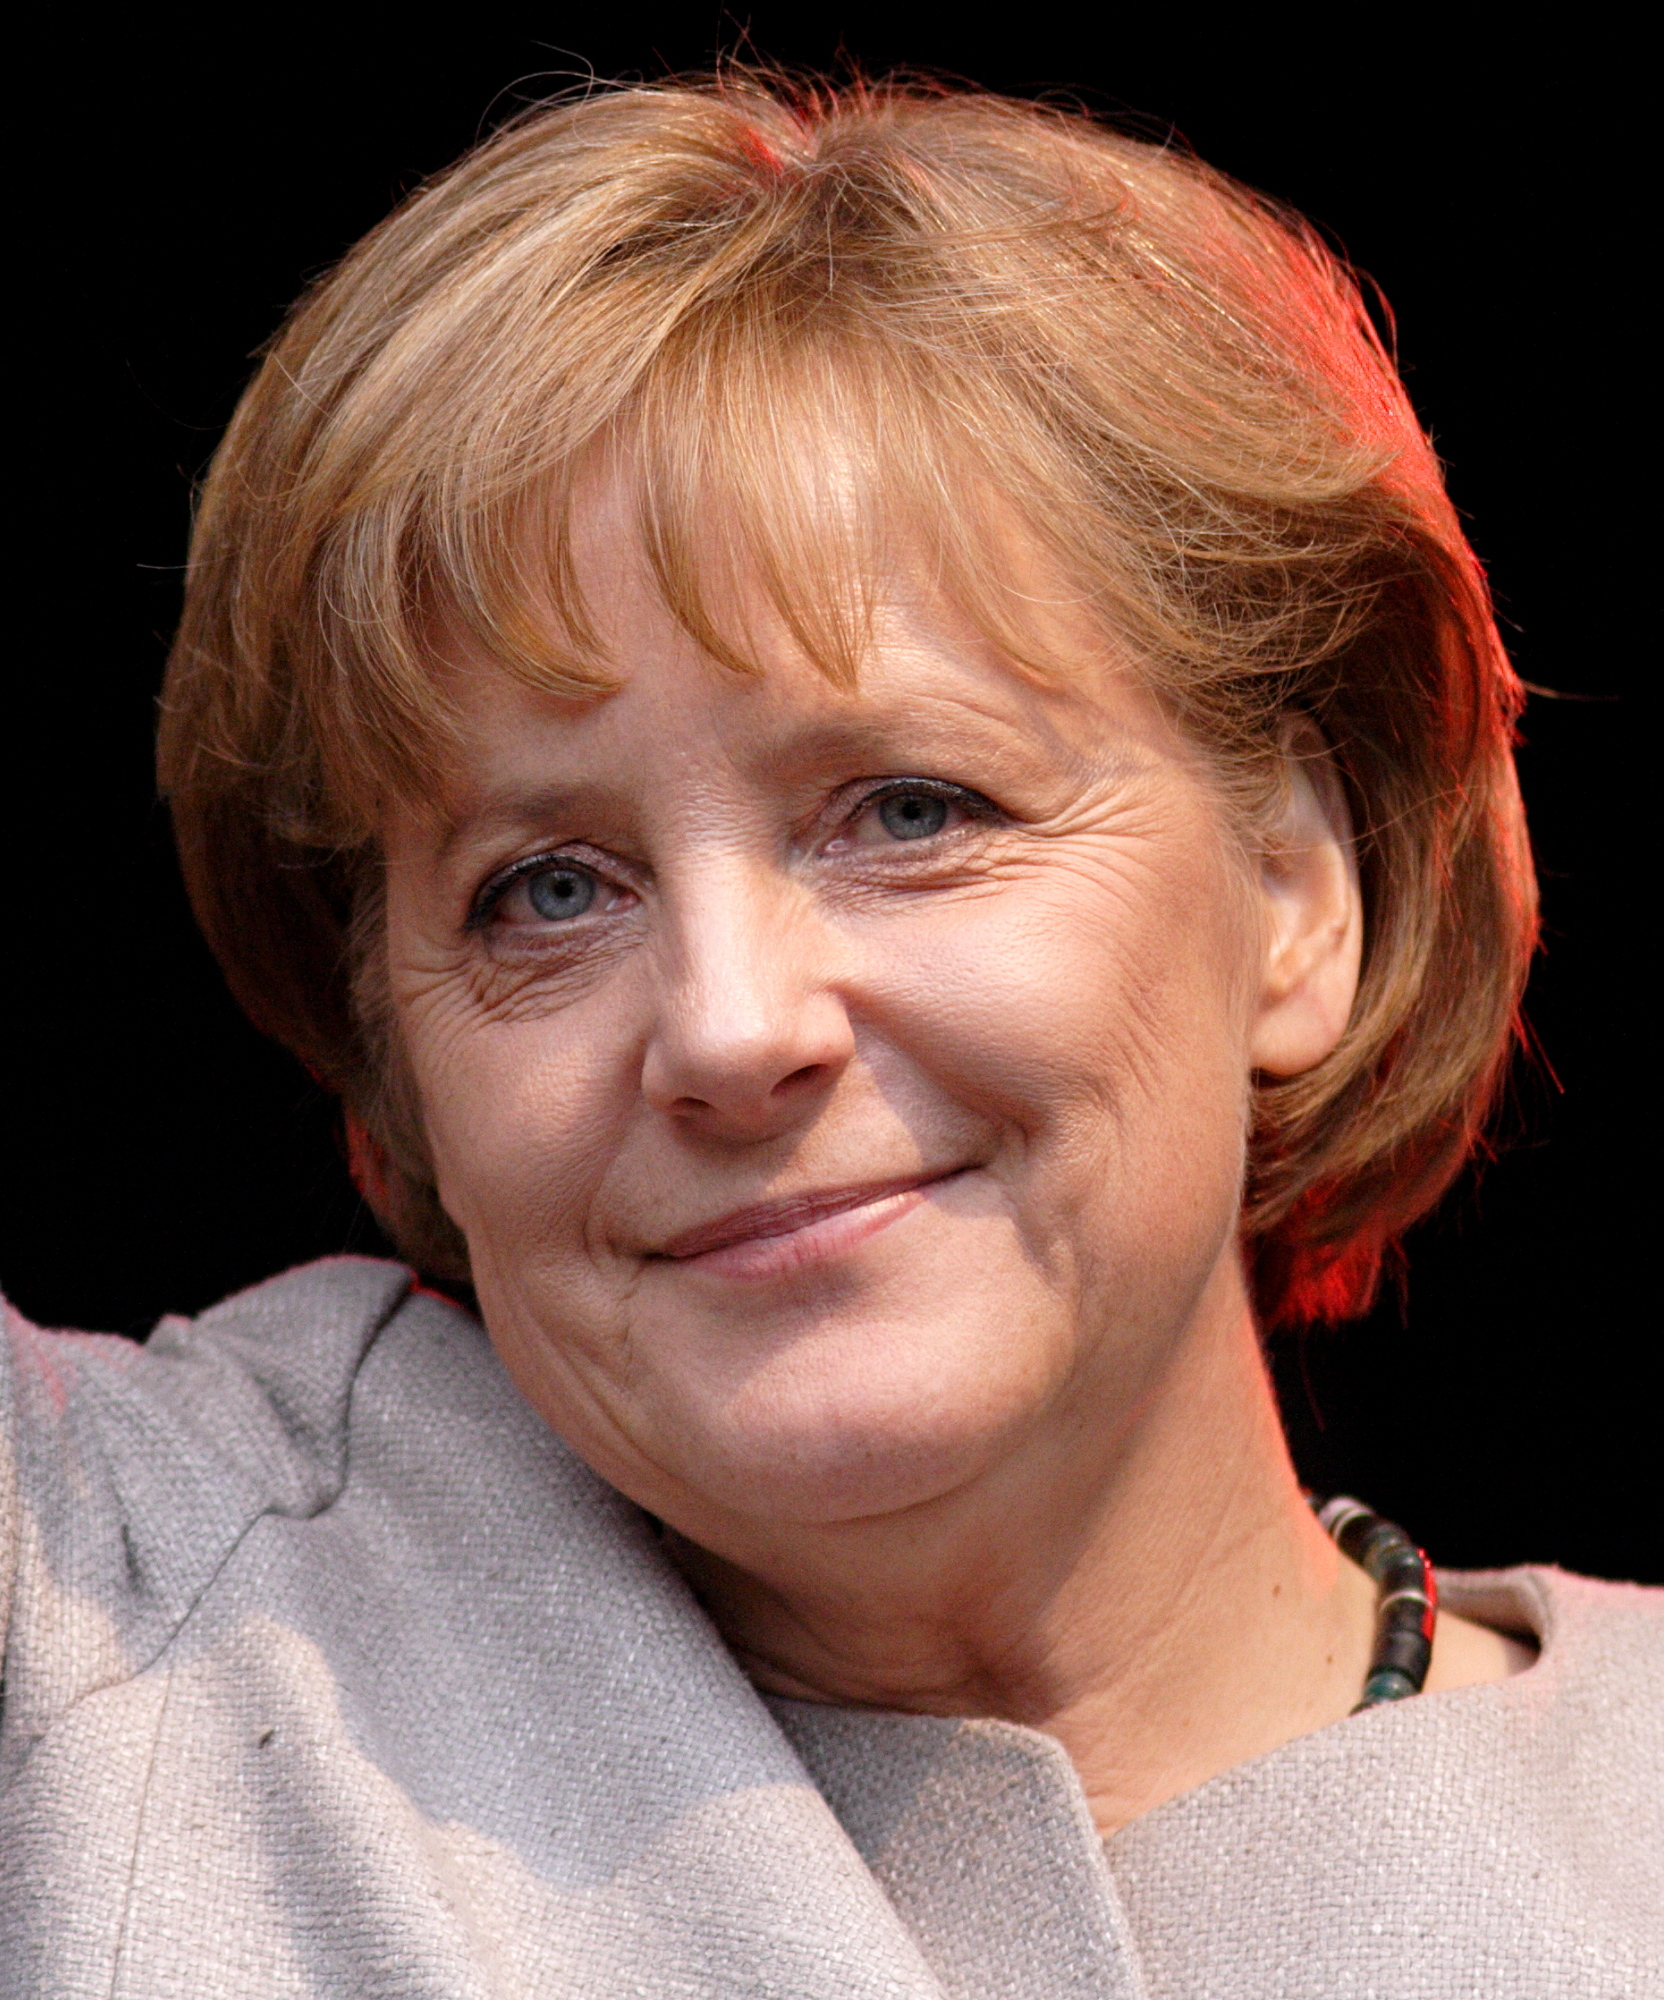 http://upload.wikimedia.org/wikipedia/commons/5/5f/Angela_Merkel_%282008%29_%28cropped%29.jpg